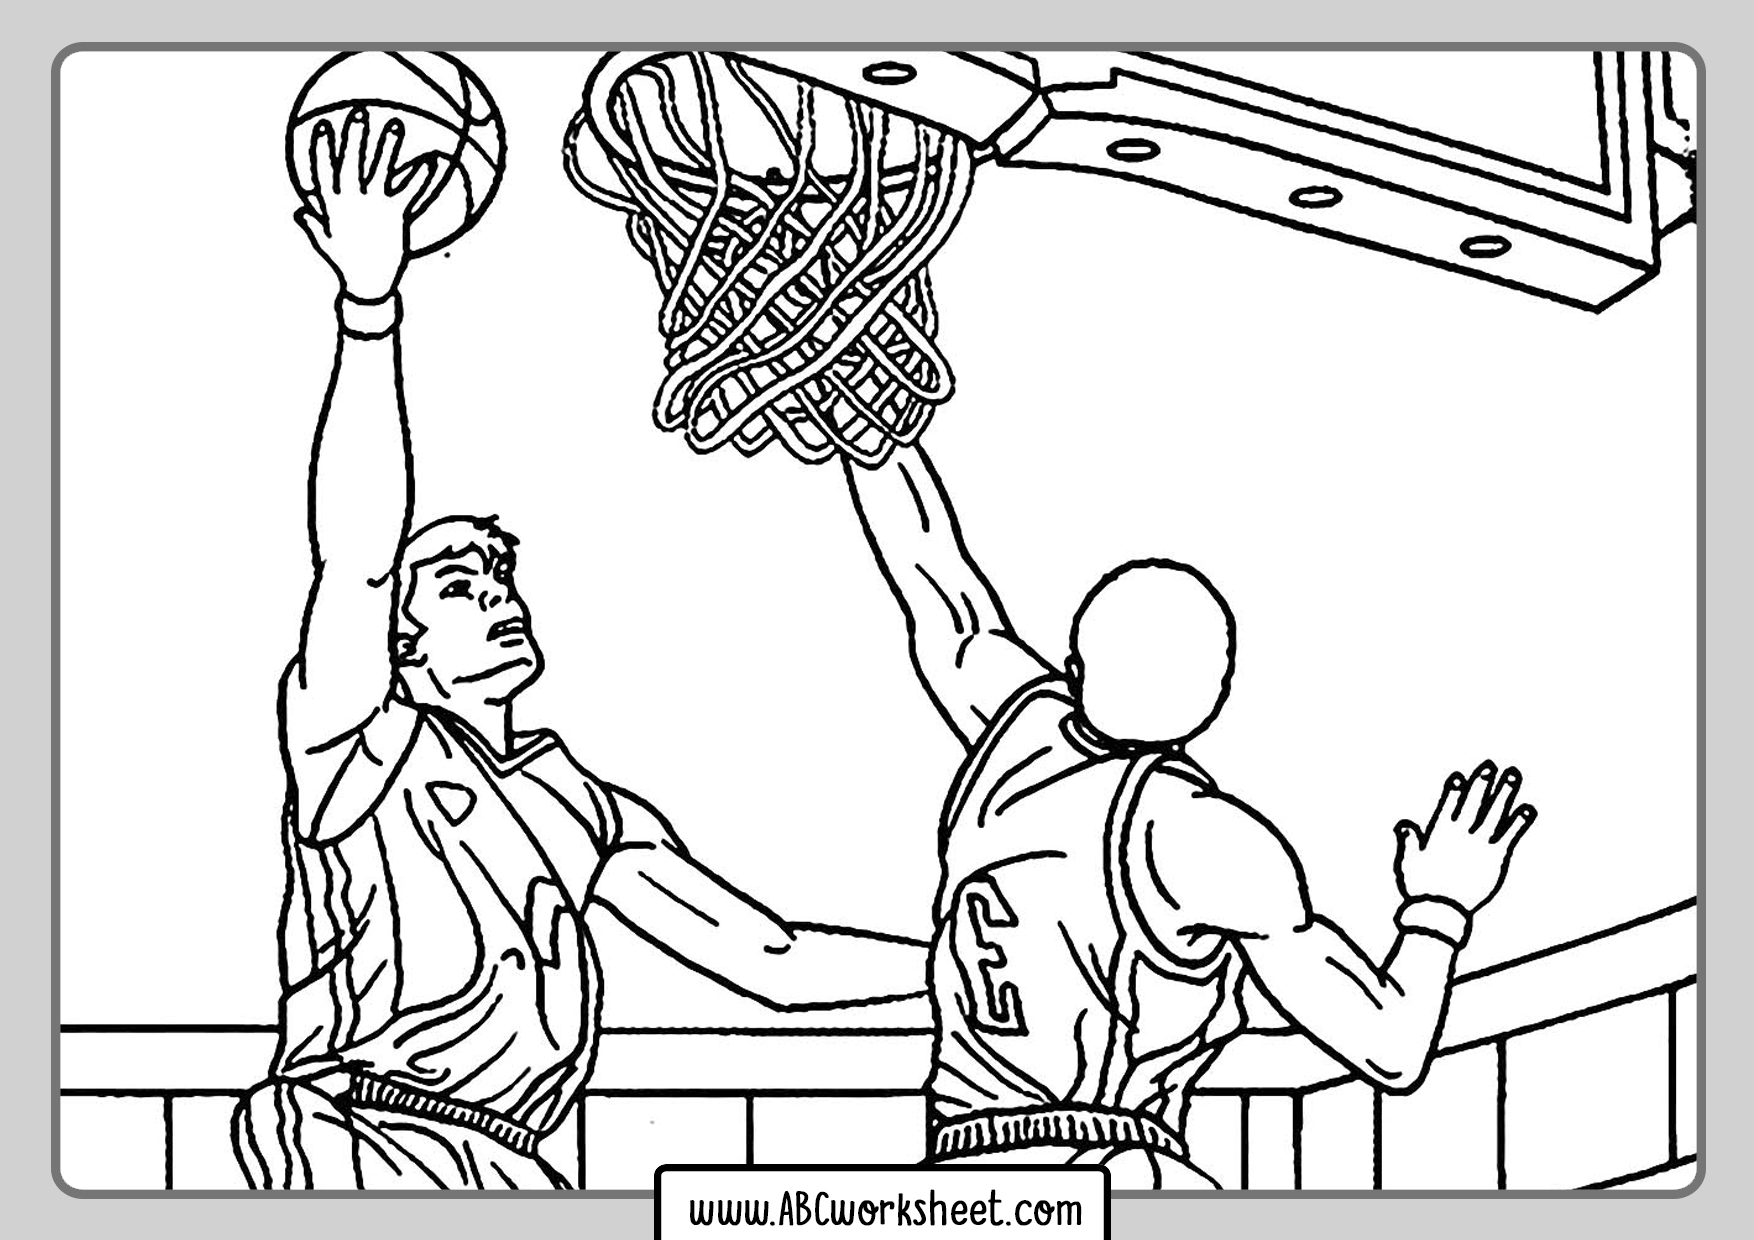 Basketball Players Coloring Pages